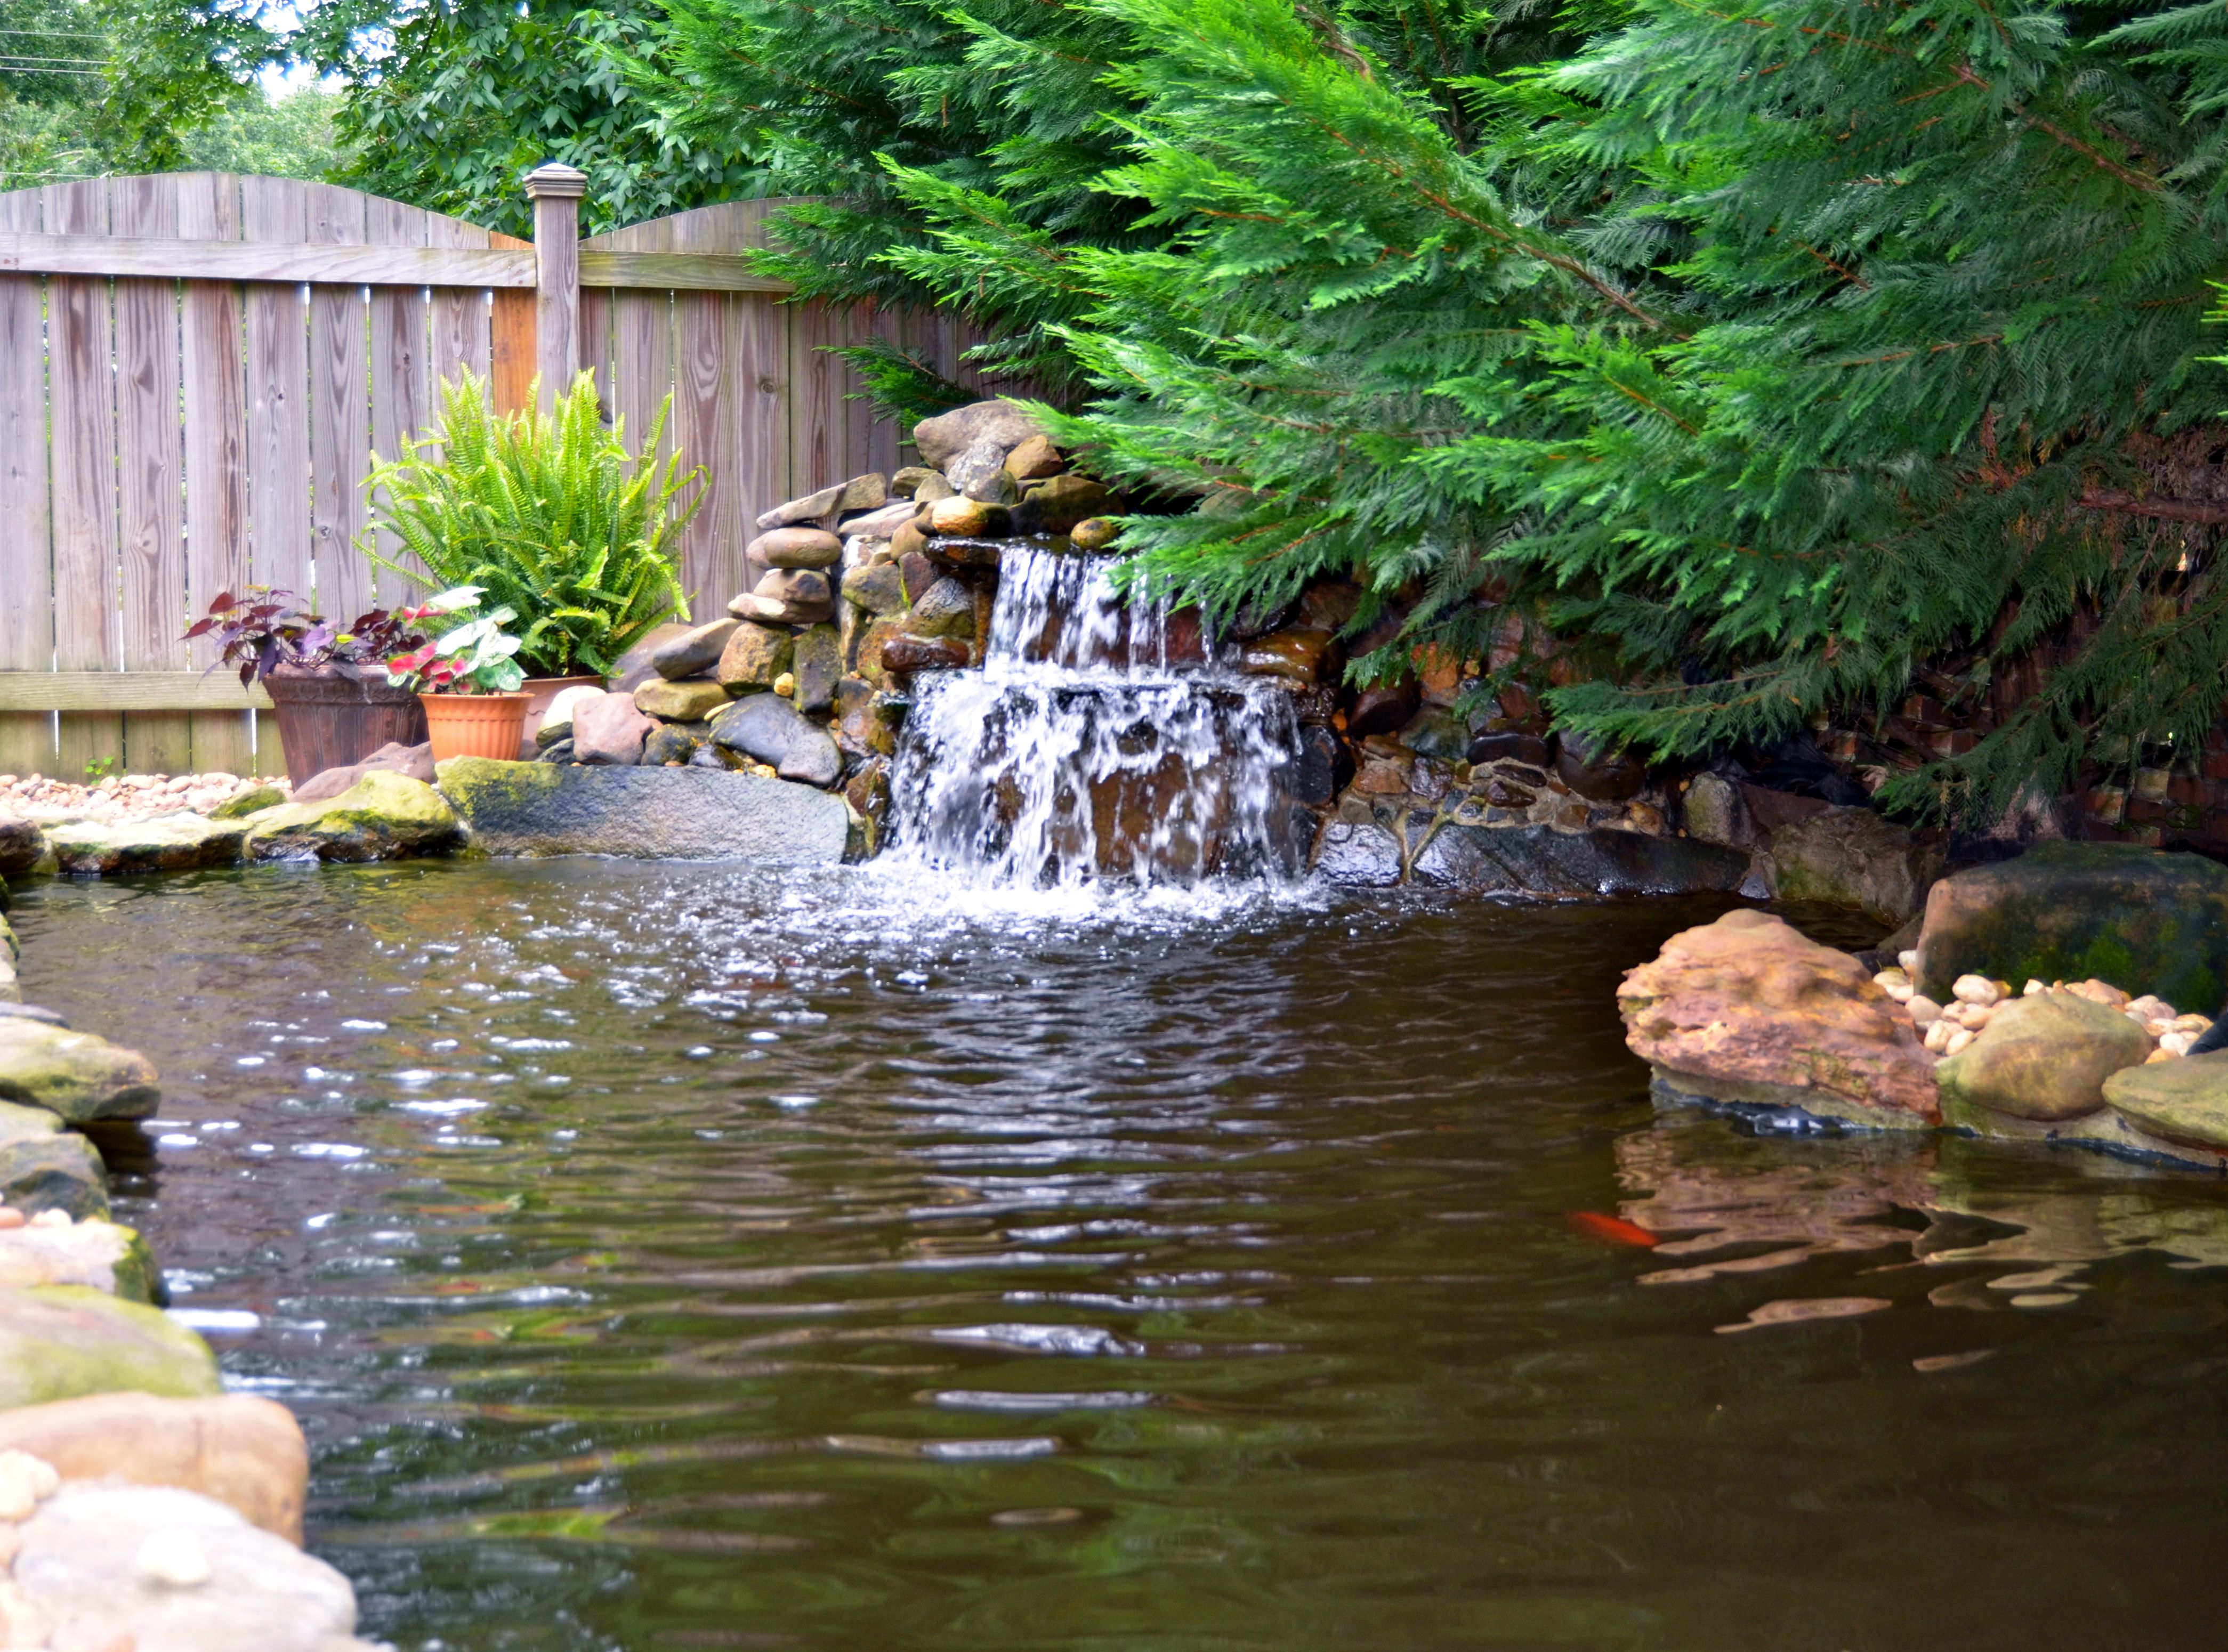 Home garden style  Backyard Koi and Goldfish Pond with Waterfall  Home Style